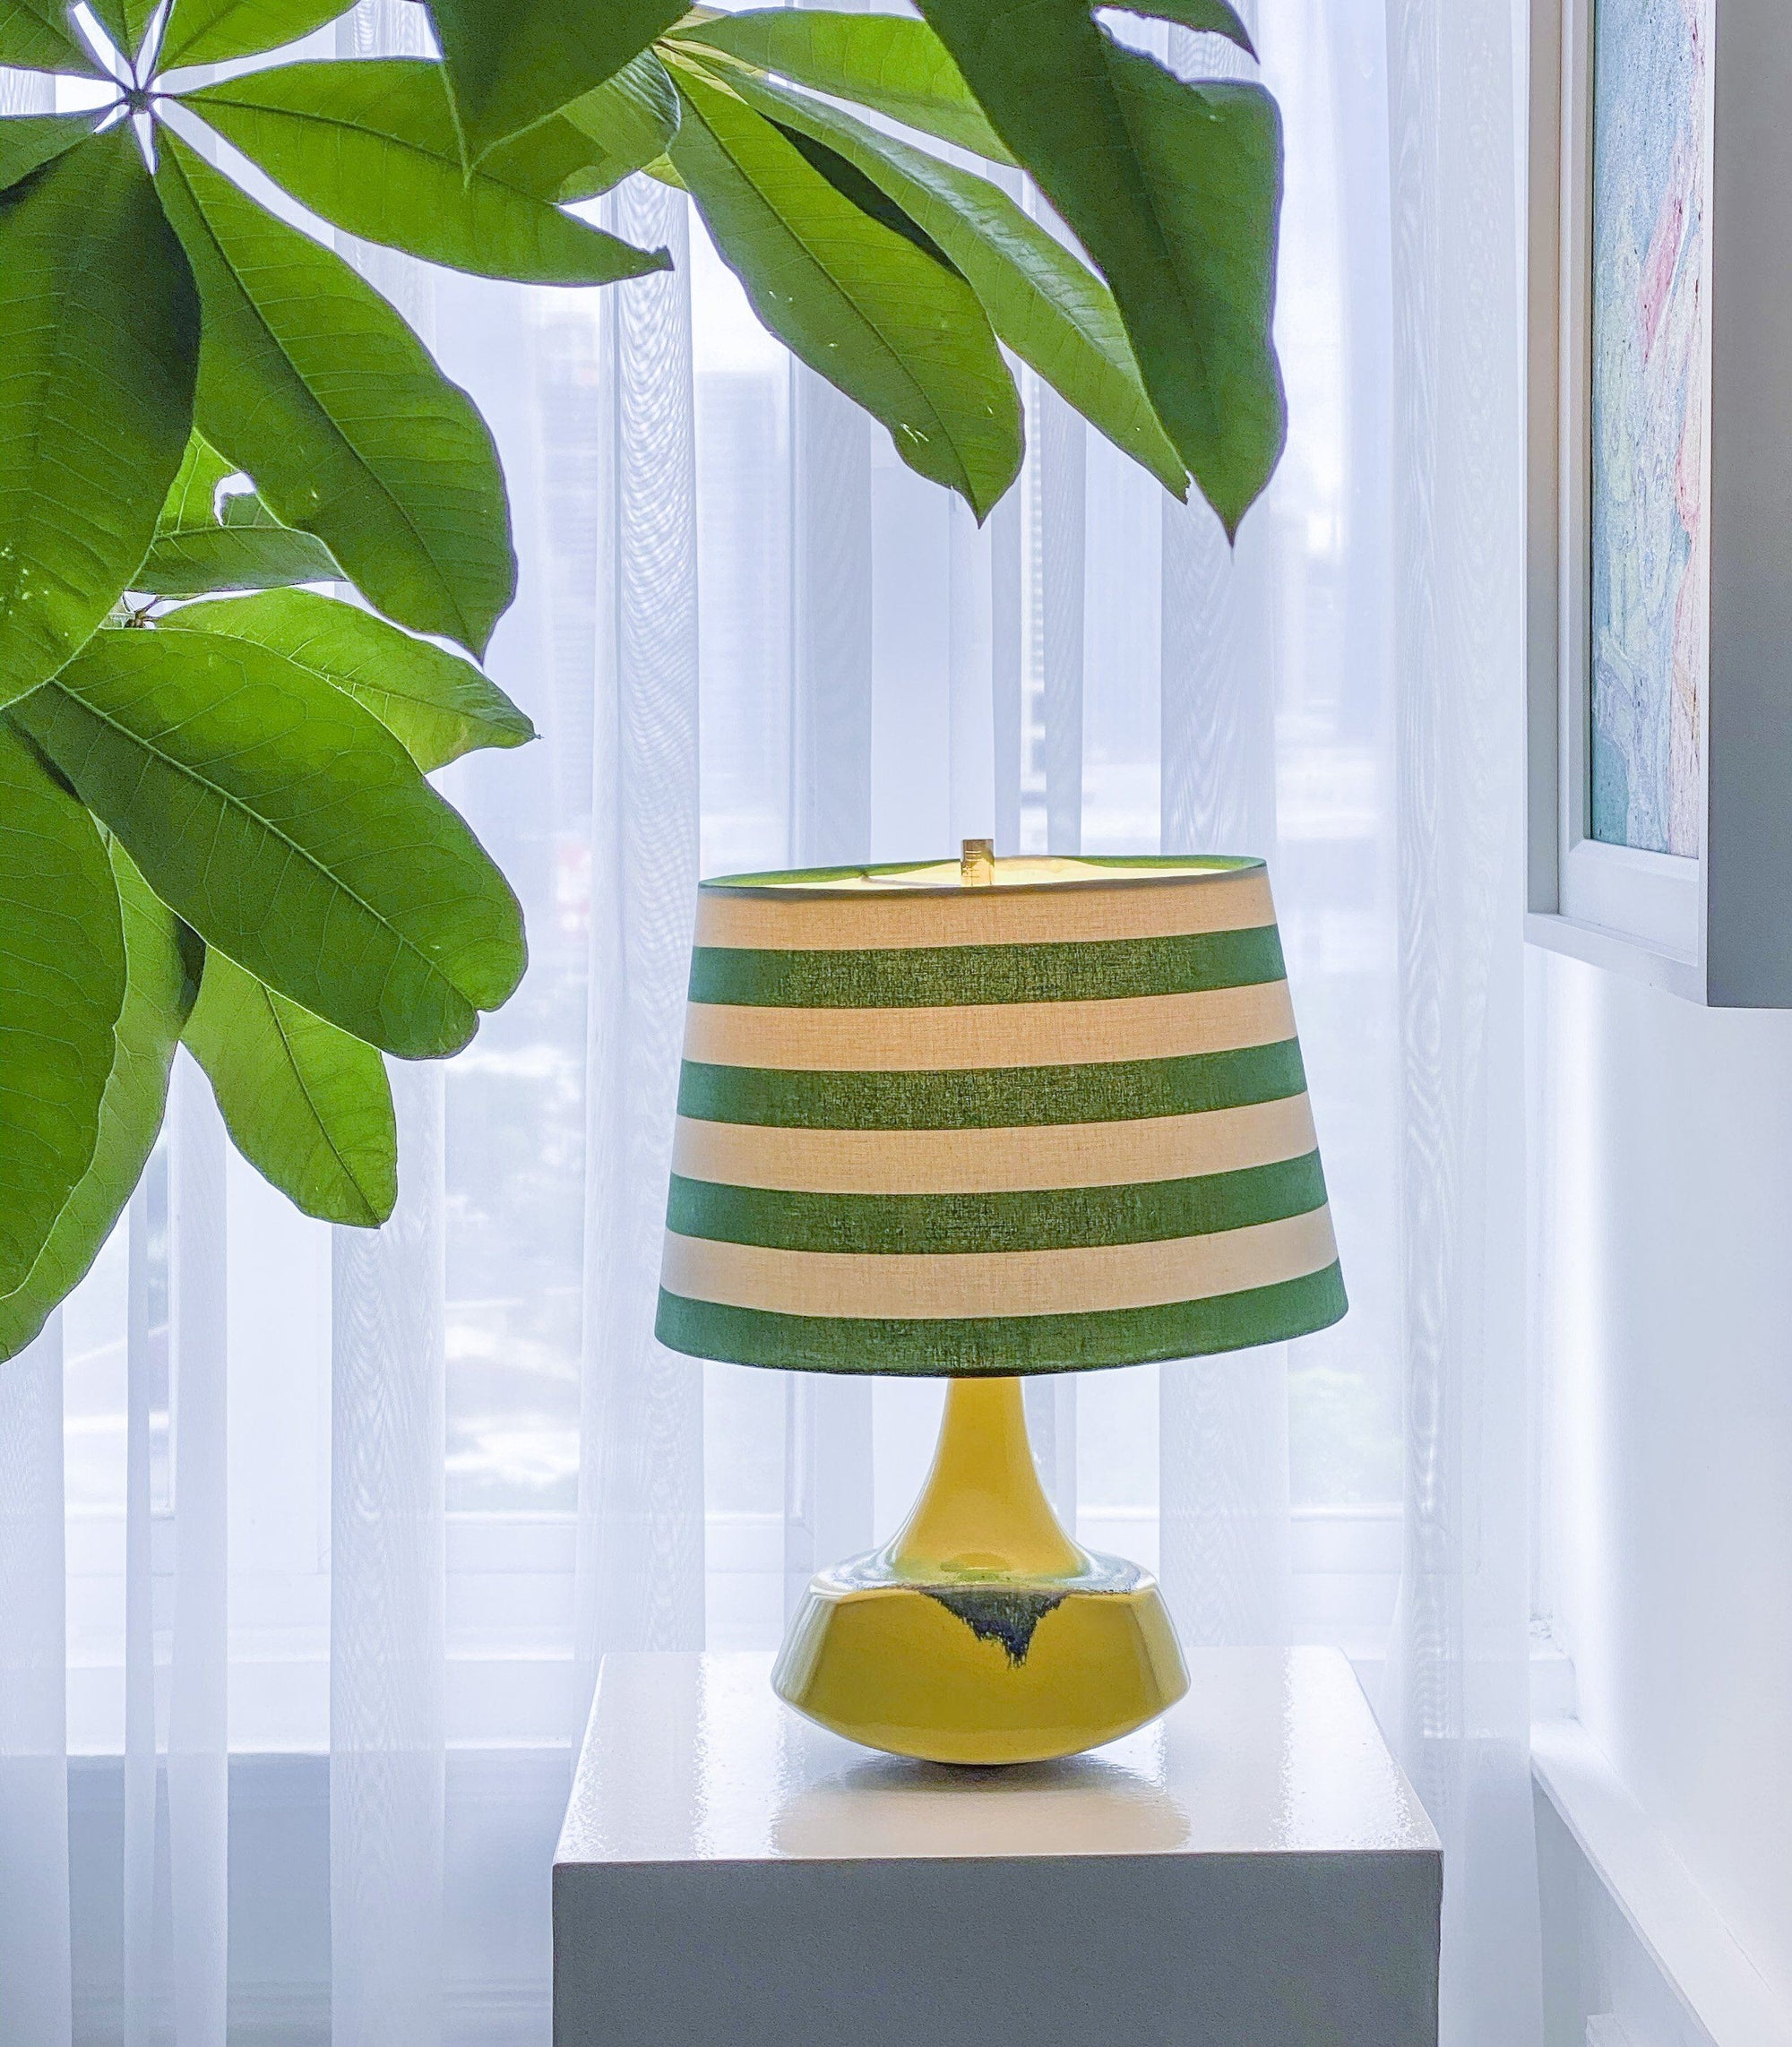 Lamp - Solano Green Stripes Table Lamp